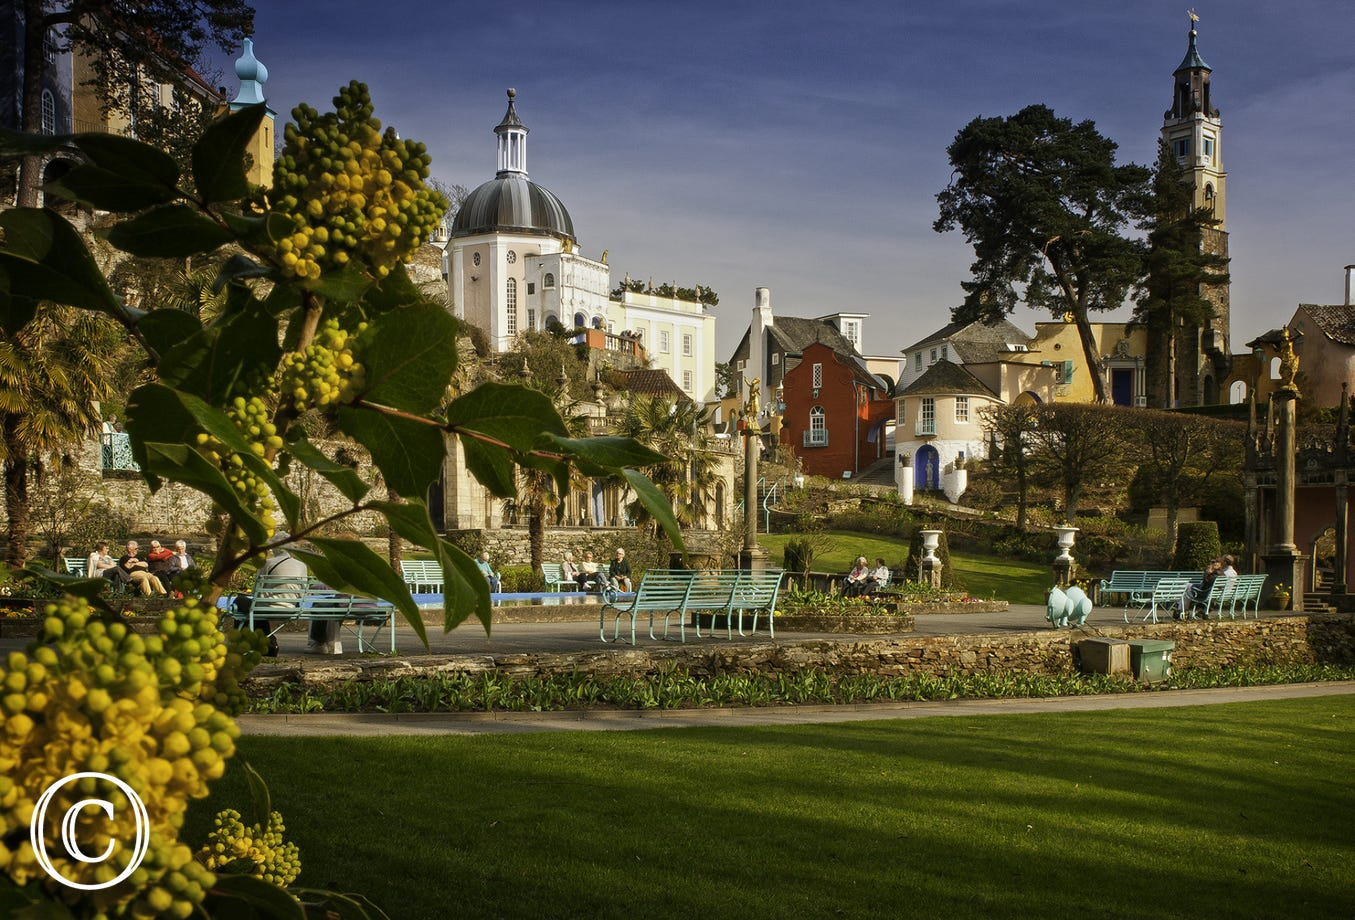 The Italian village of Portmeirion is within 15 miles